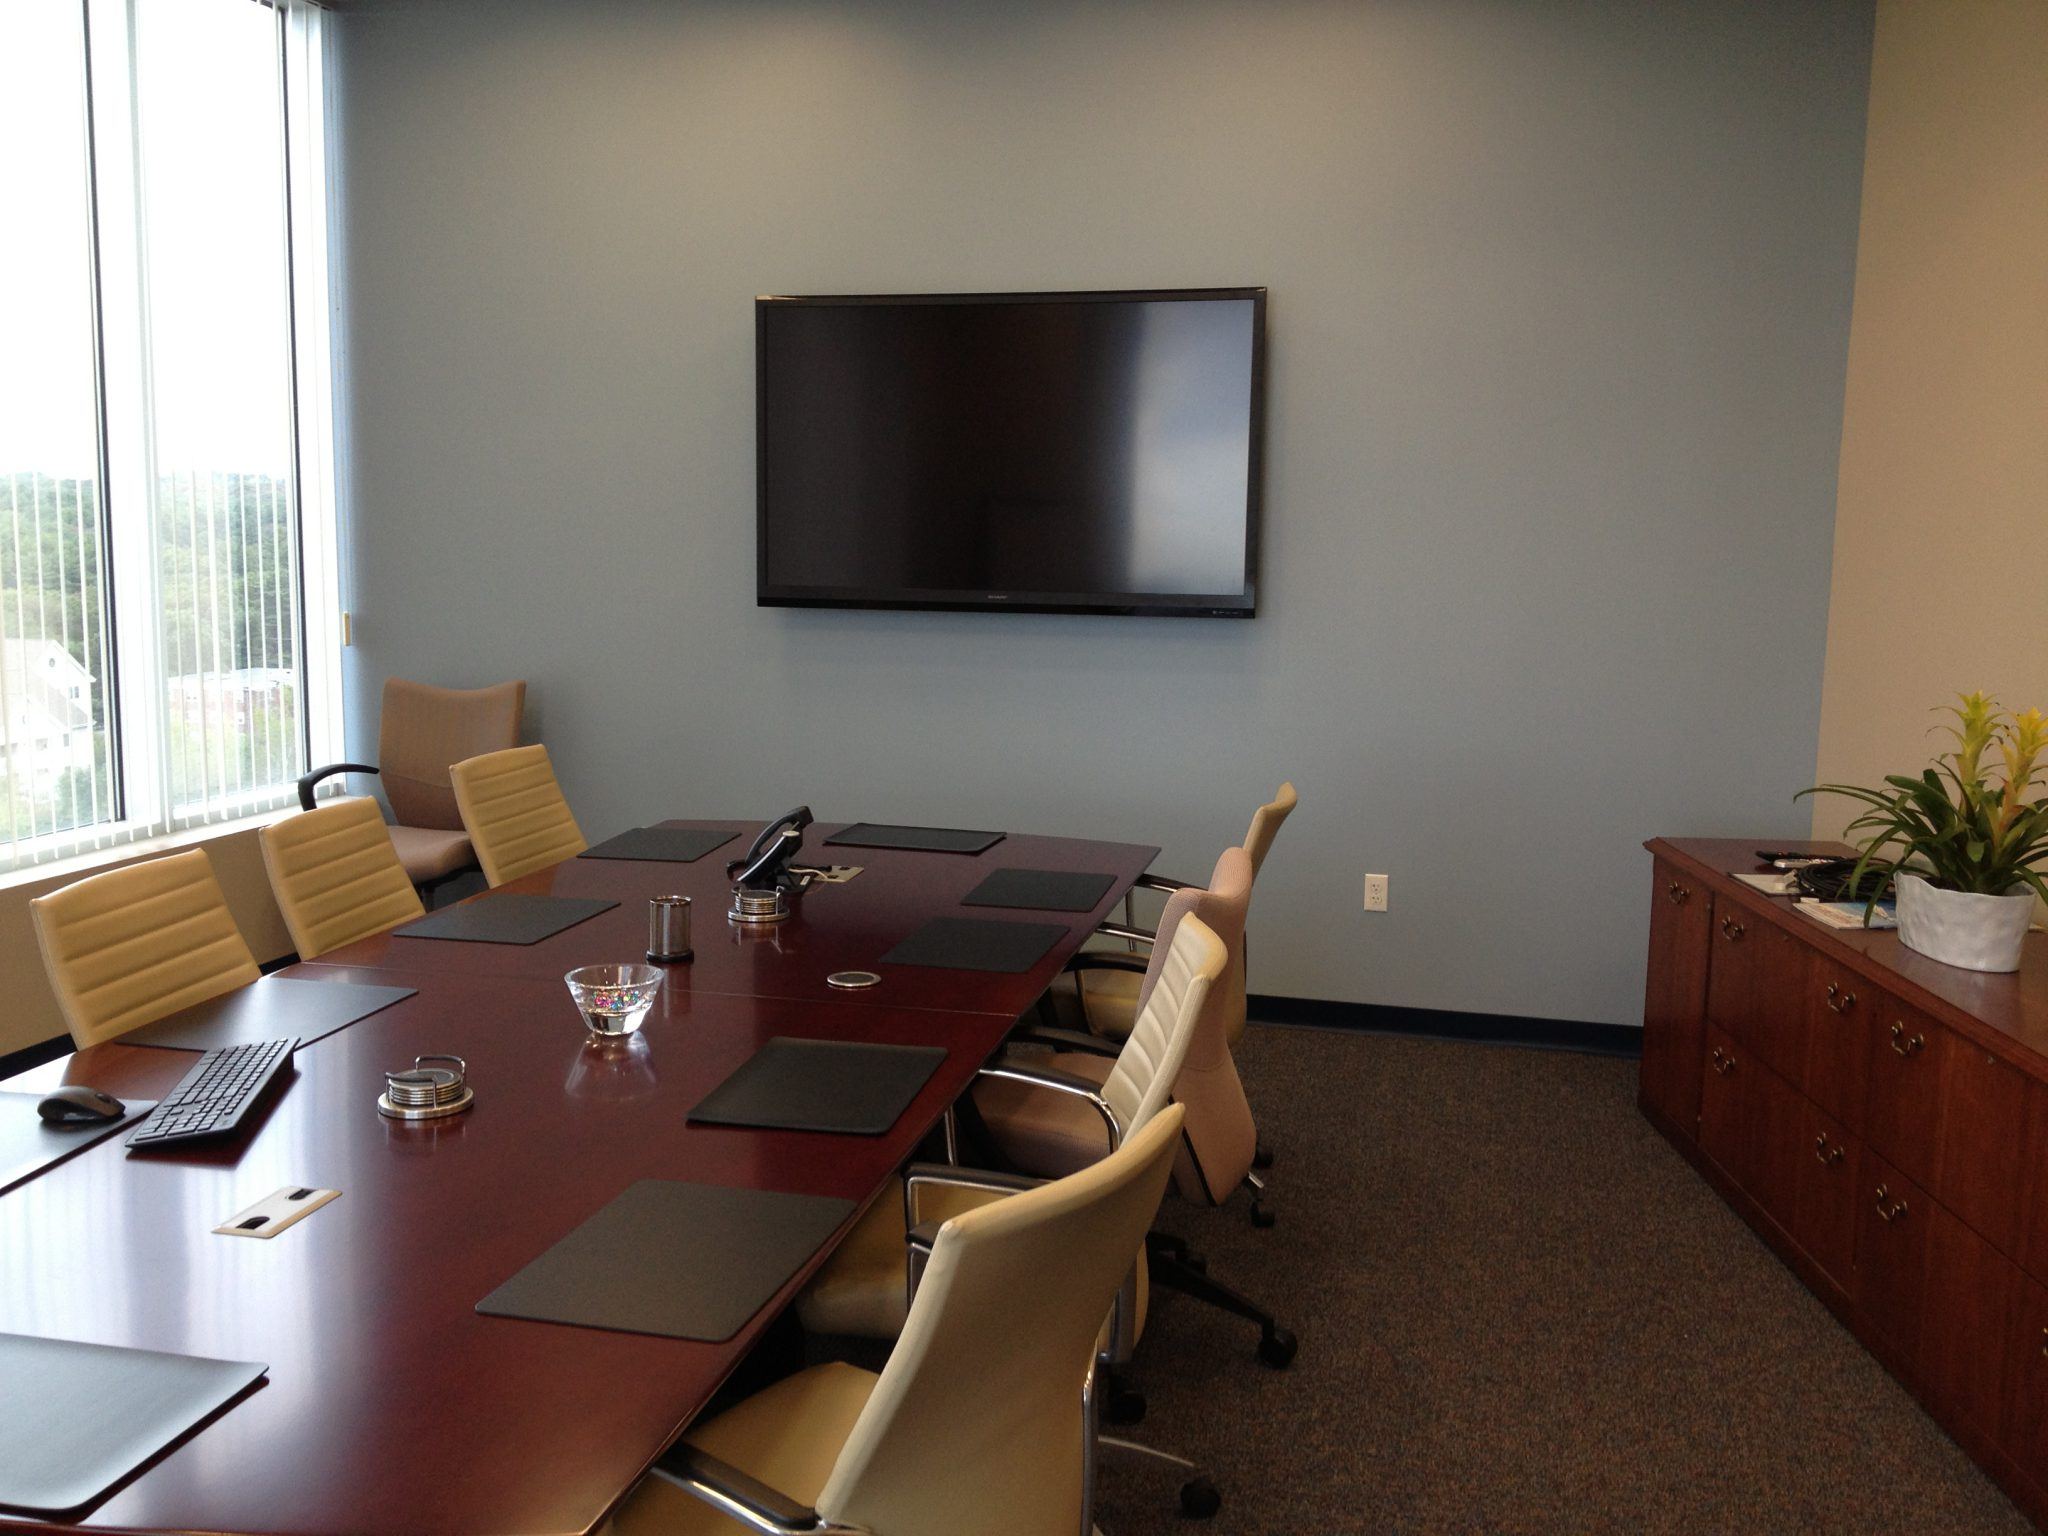 Board room AV equipment